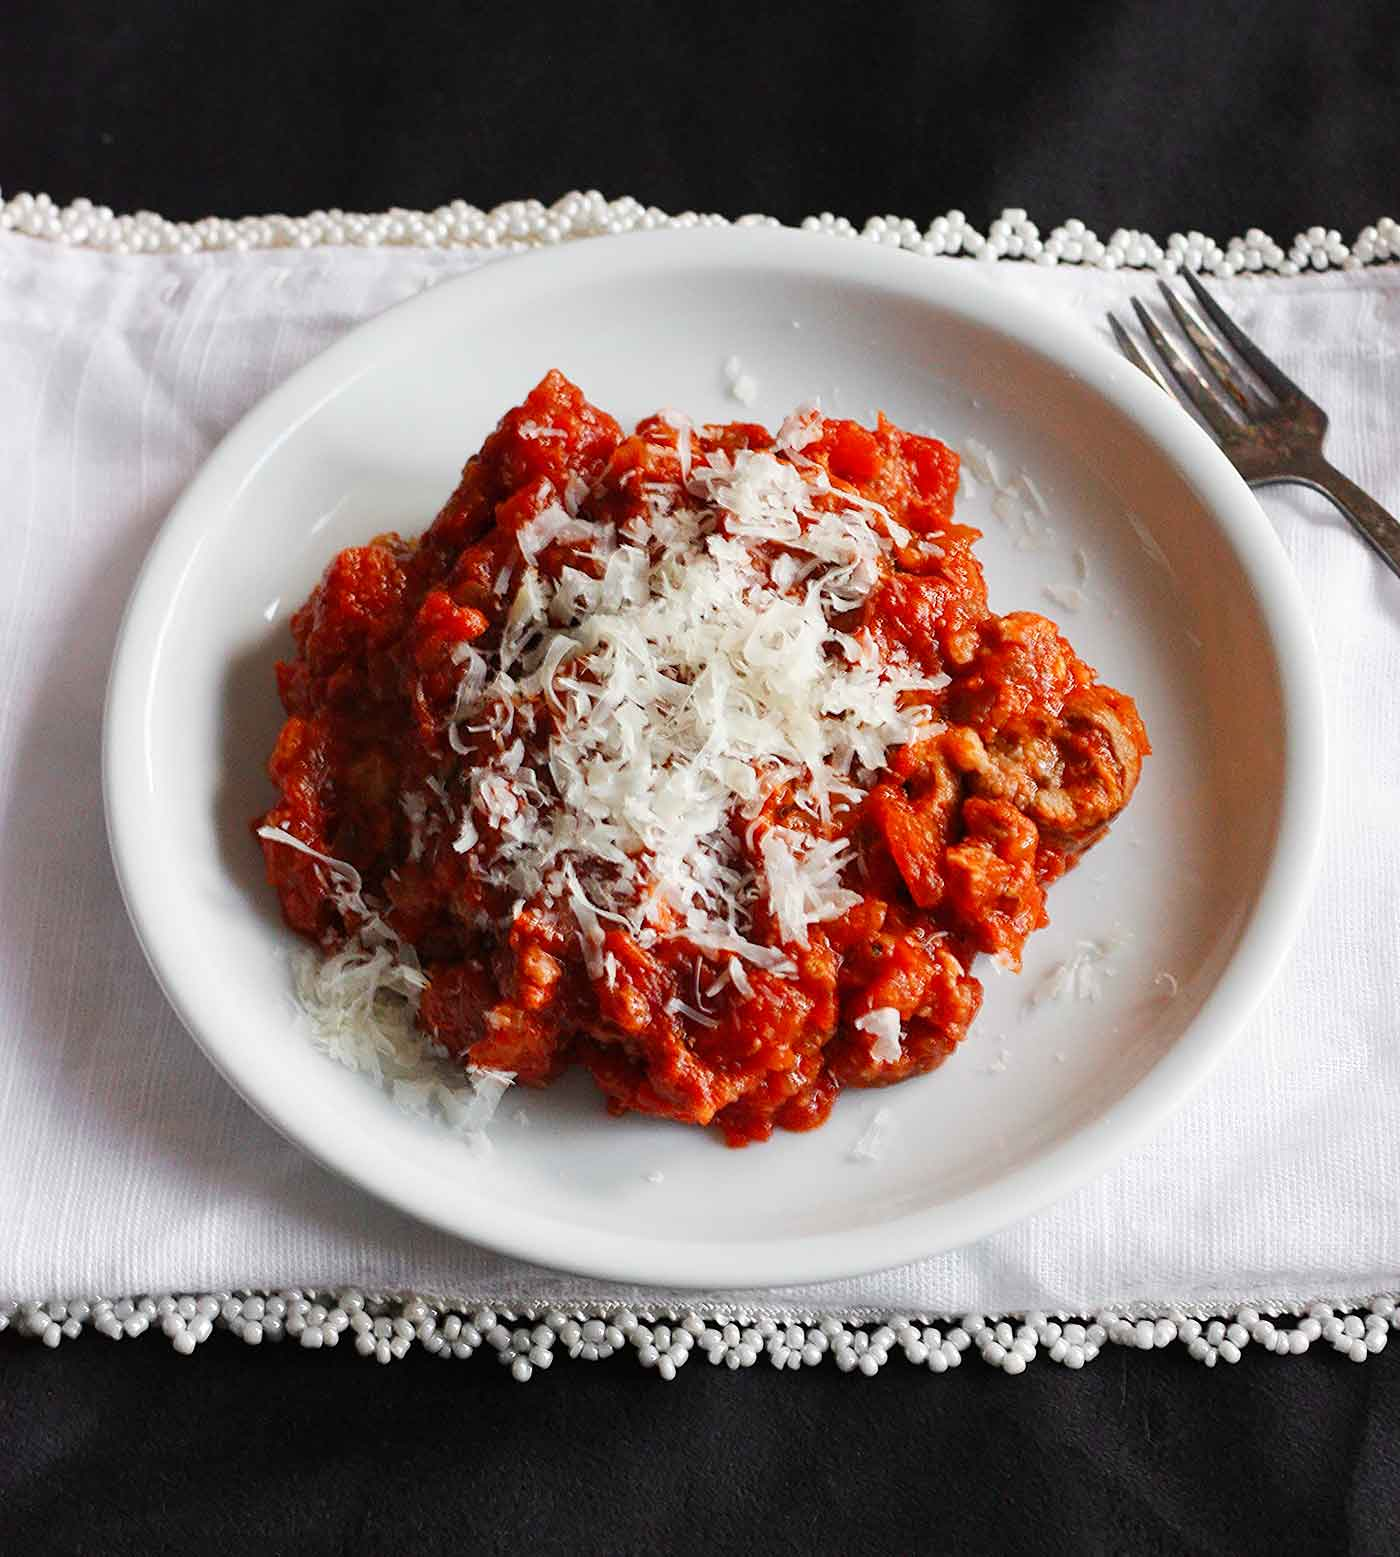 Braciole with sauce and grated cheese on a plate